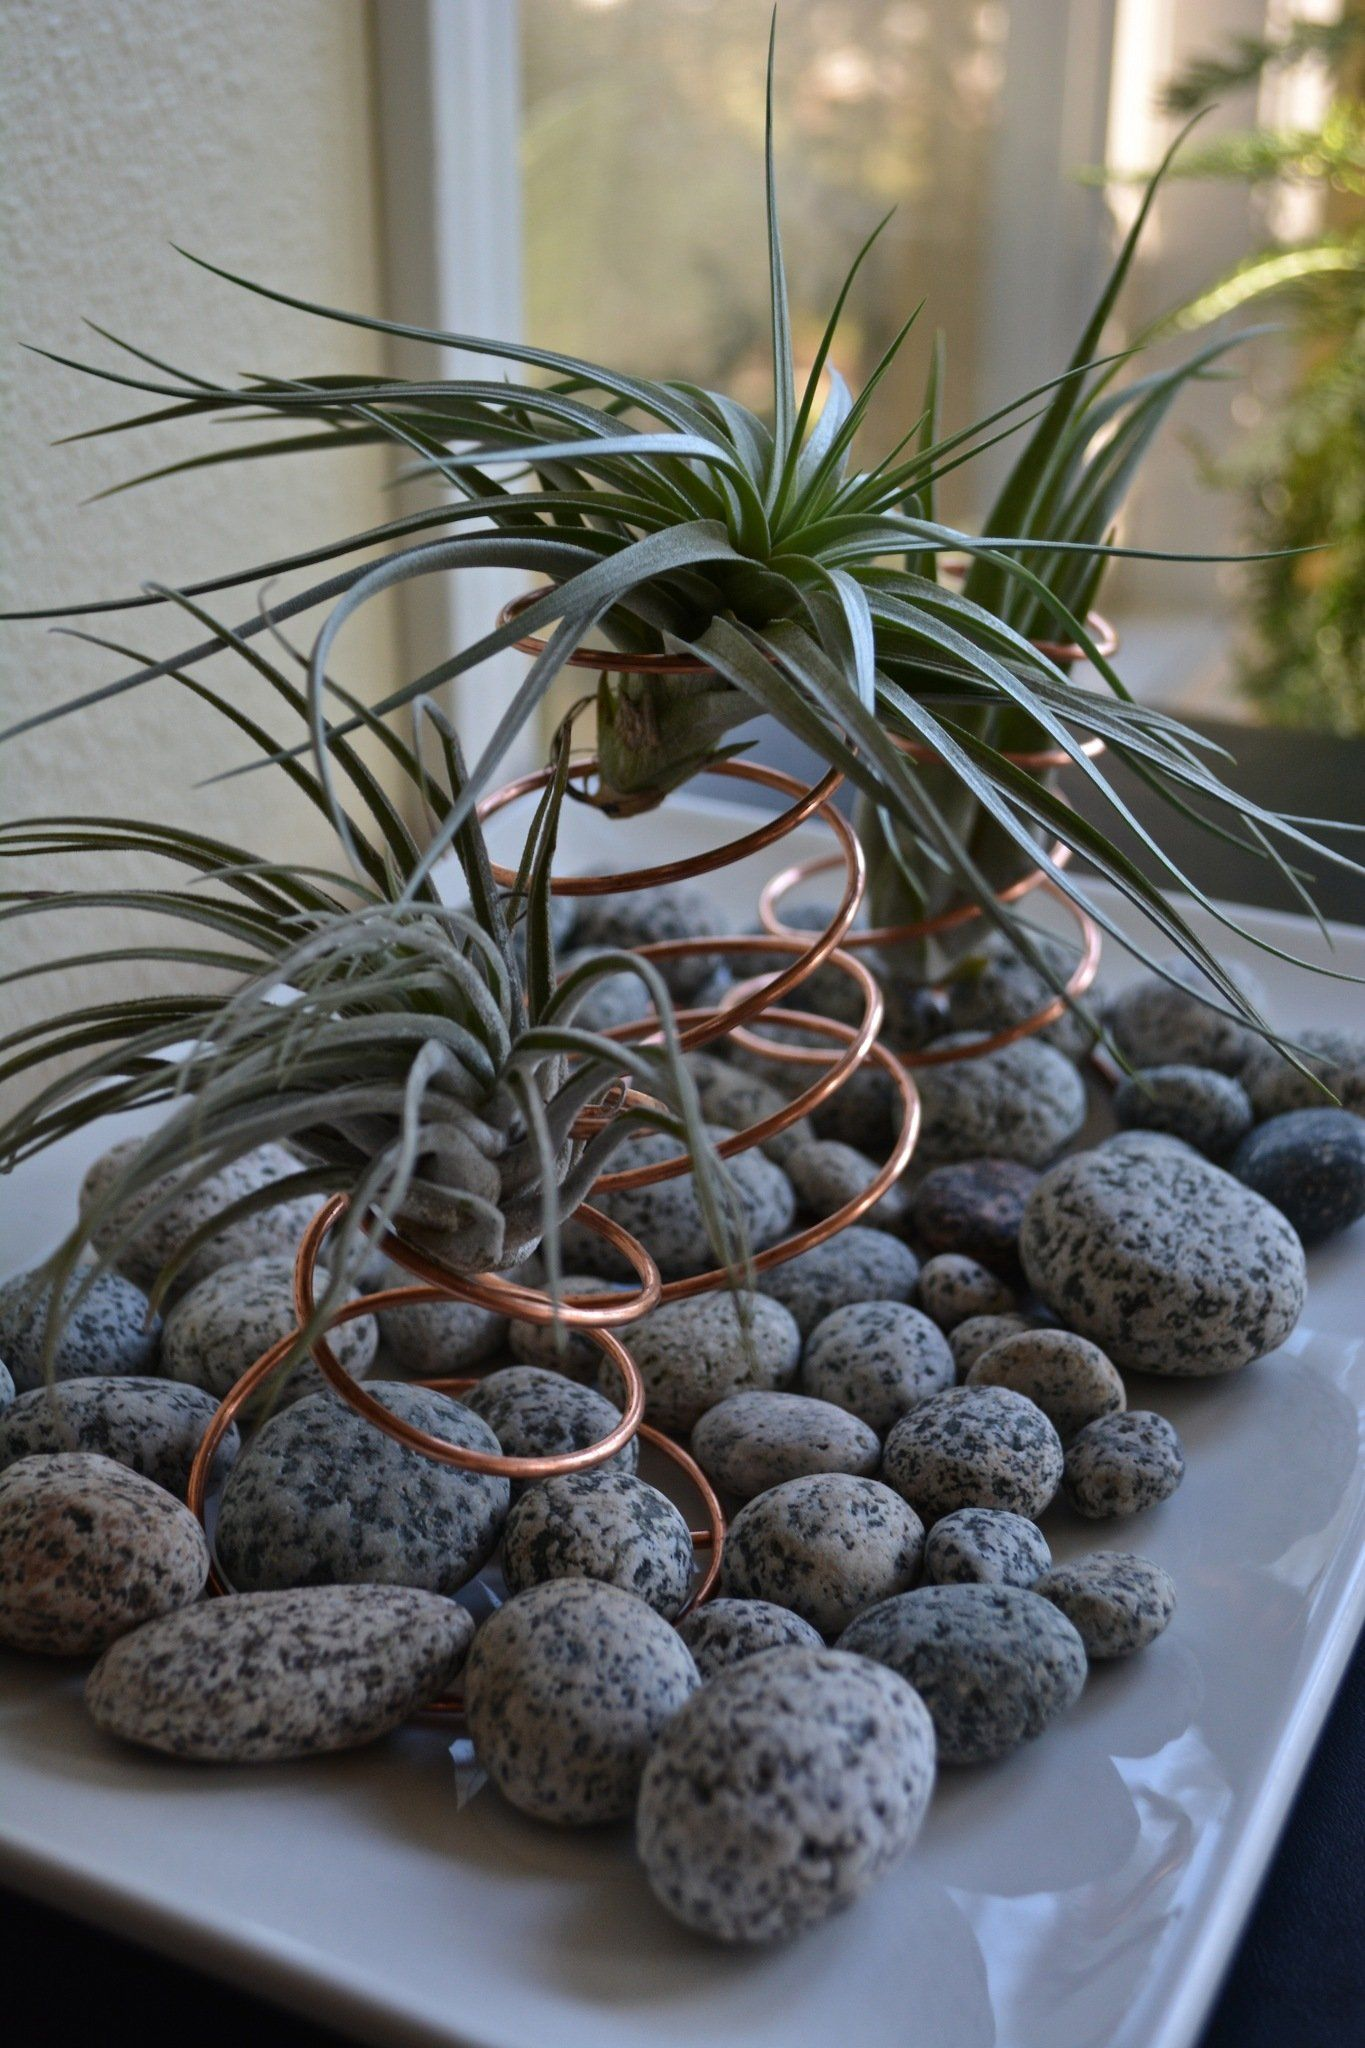 Photo of How to care for and display air plants in the home: The Pecks (photos)